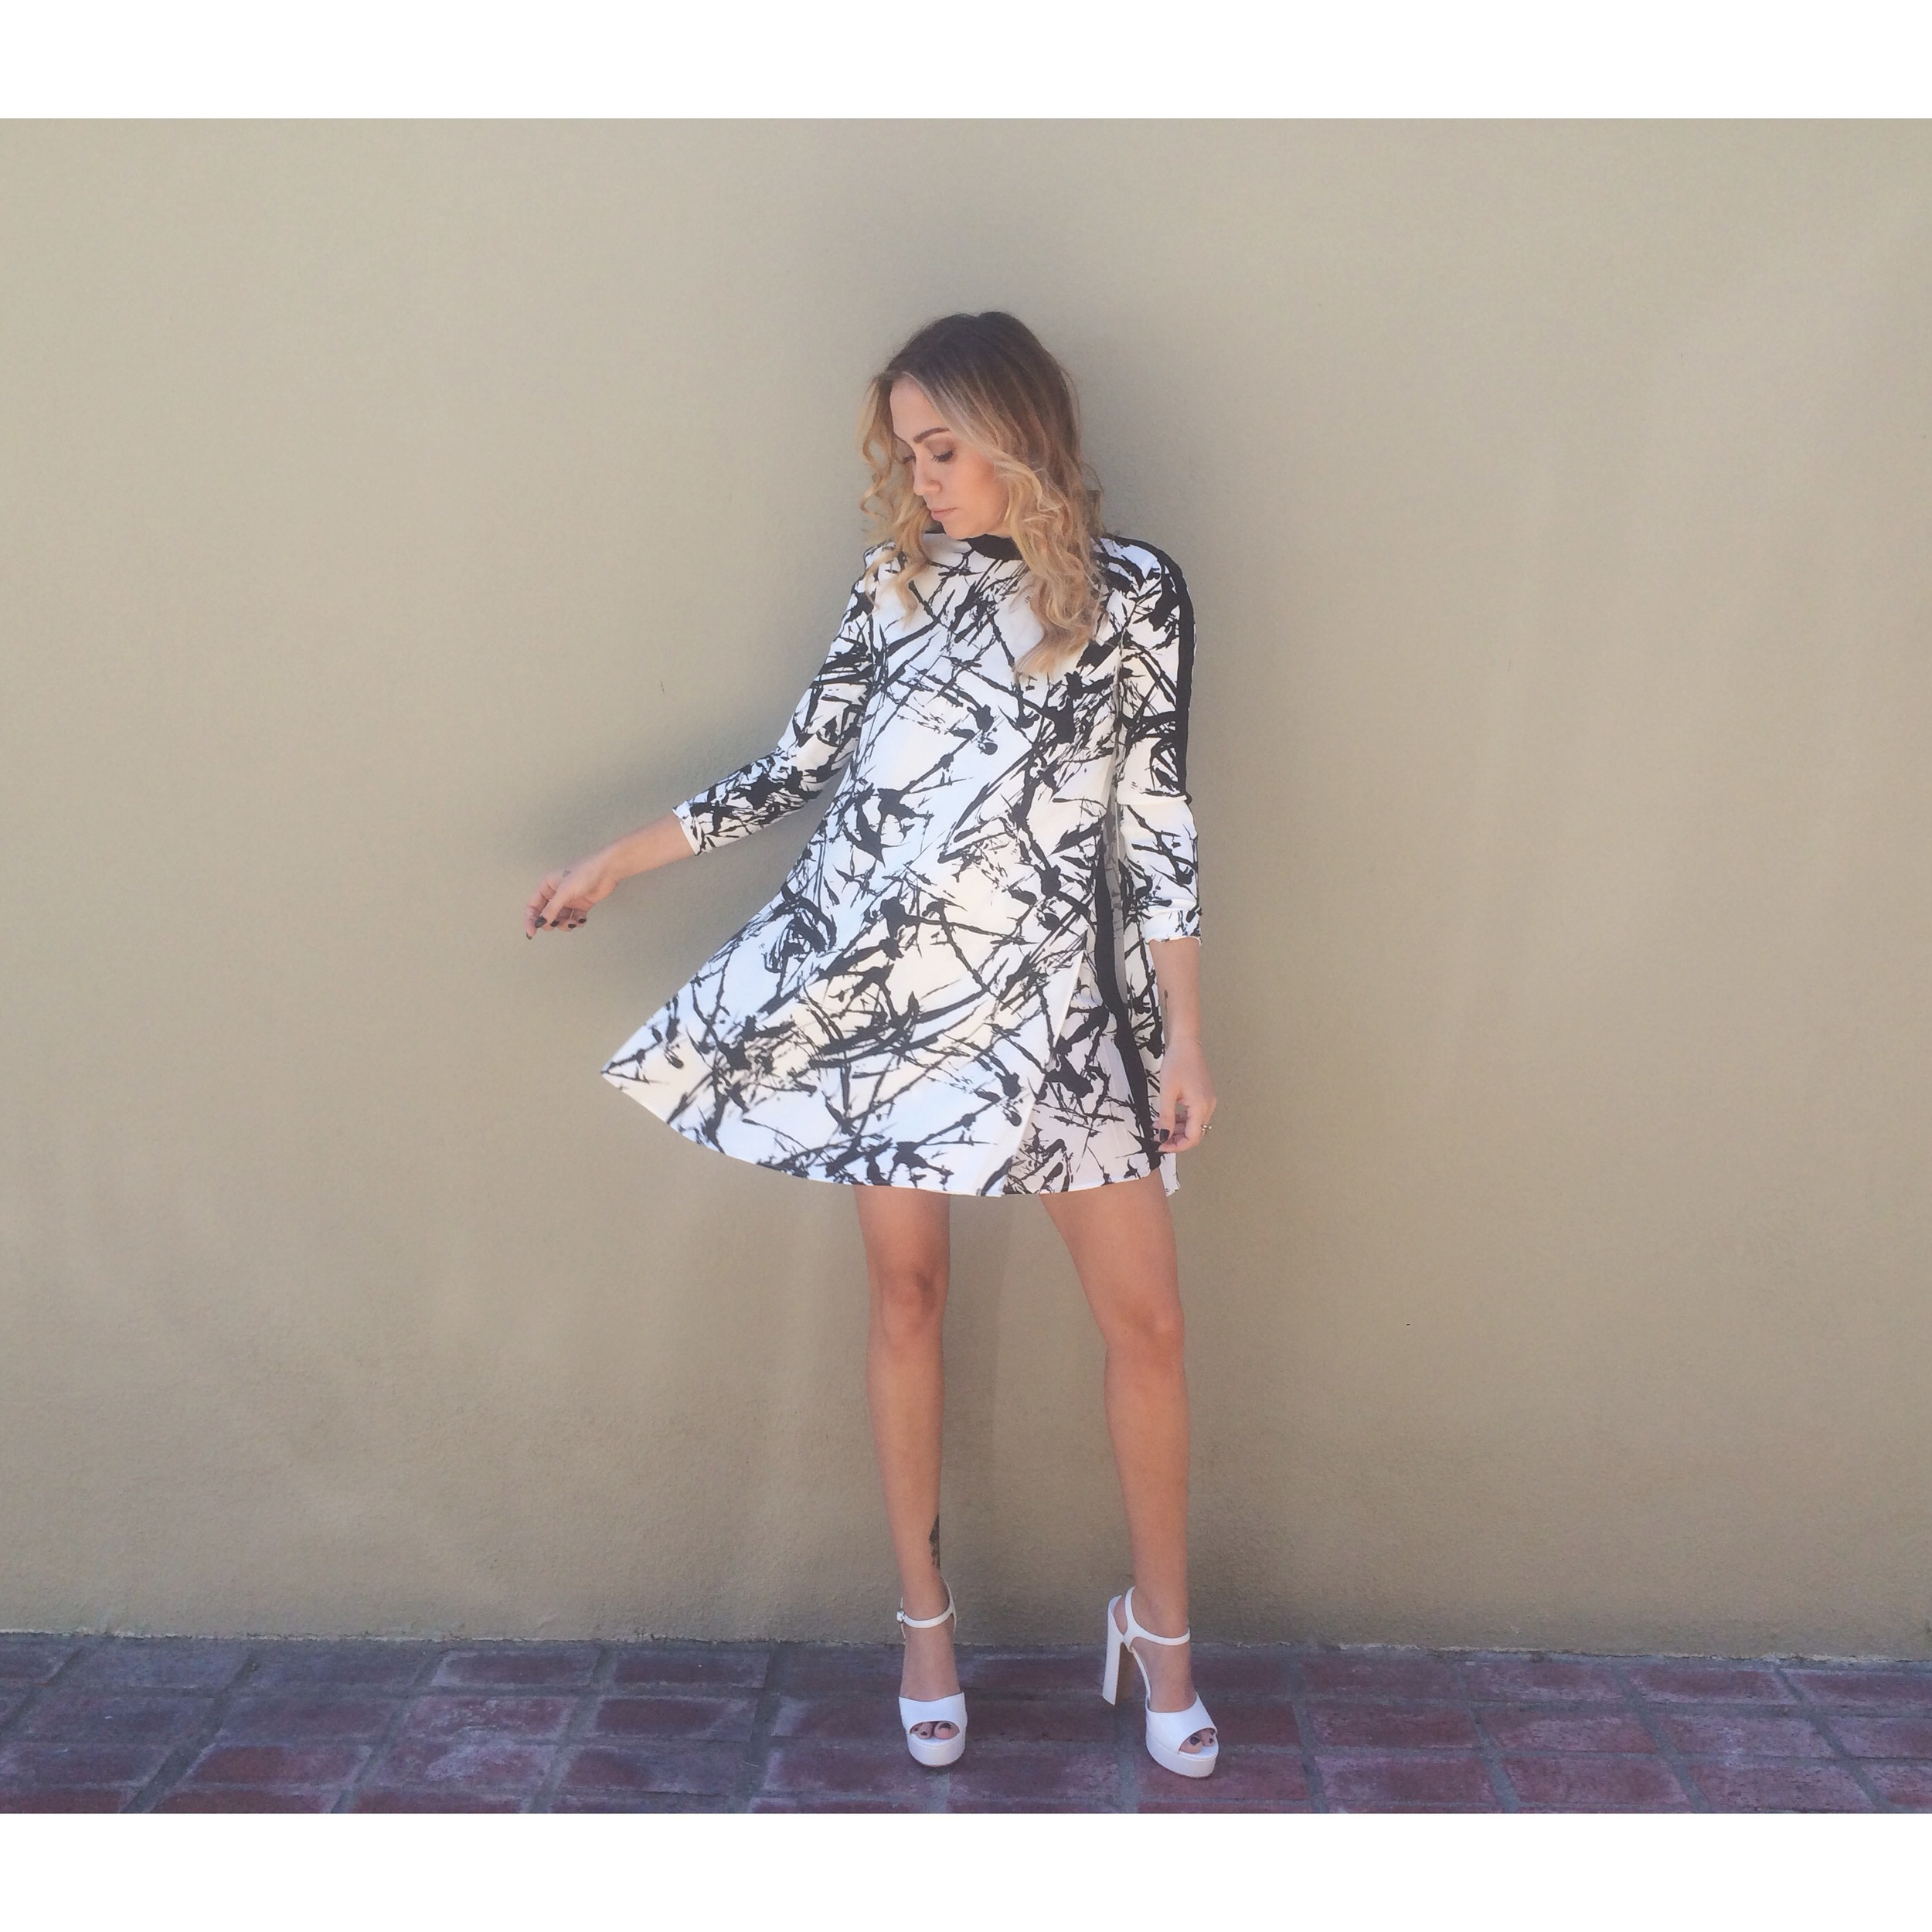 Dress -A.L.C.  |  Shoes - TopShop        || glam by Stella Kae + wardrobe by Jacqueline Rezak